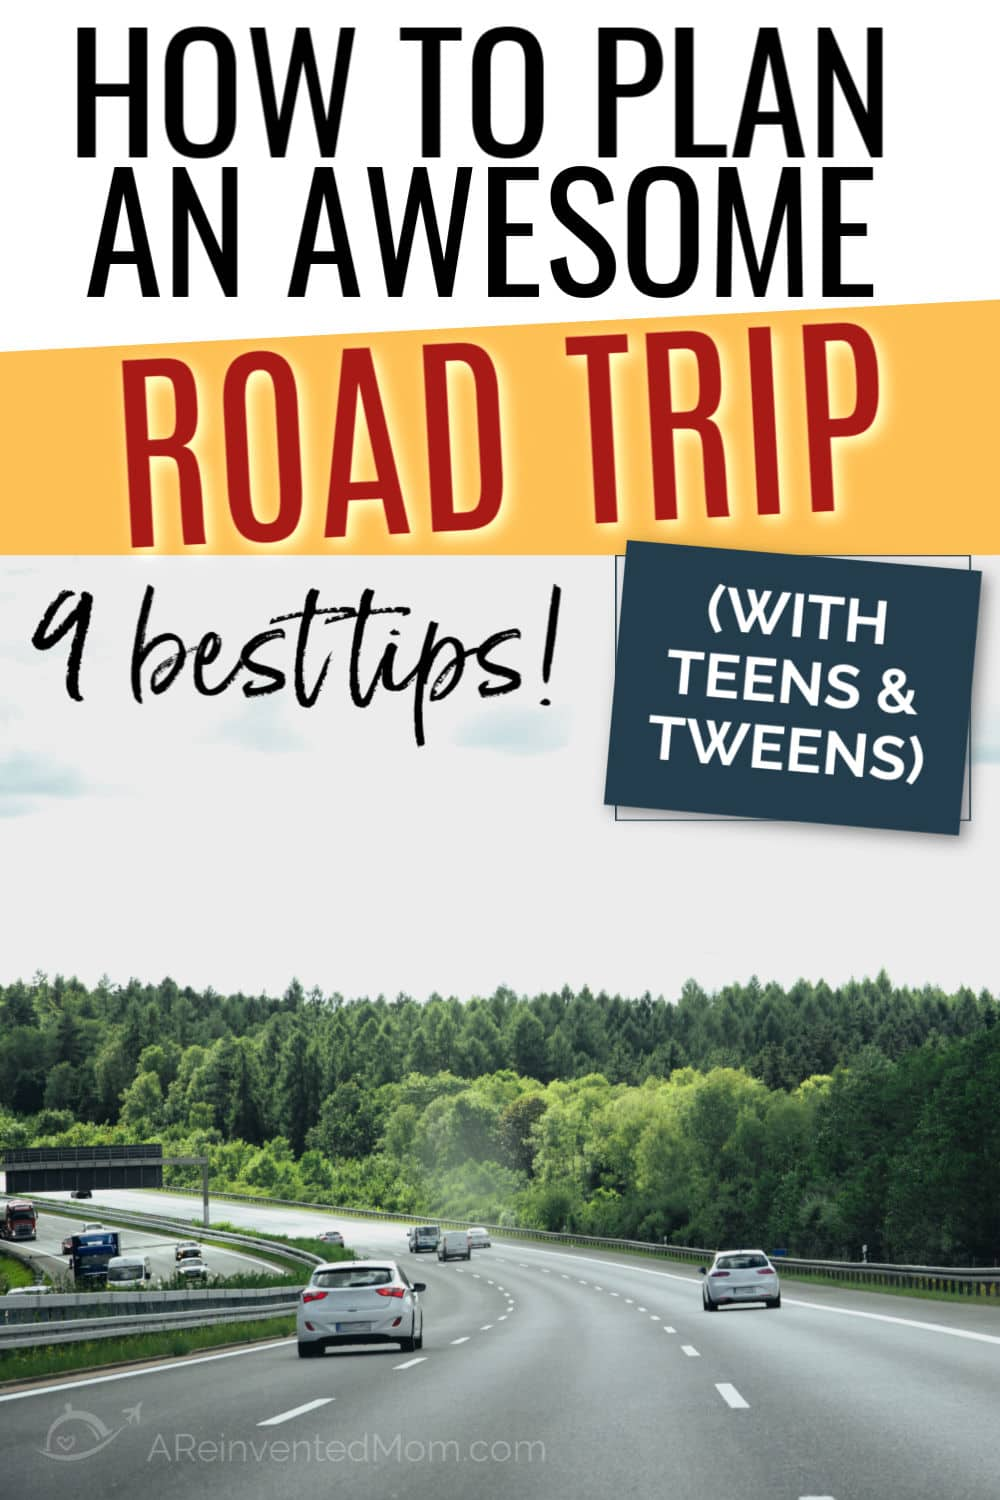 Six lane highway with cars and forest on the edge with How to Plan An Awesome Road Trip with Teens & Tweens graphic overlay | A Reinvented Mom